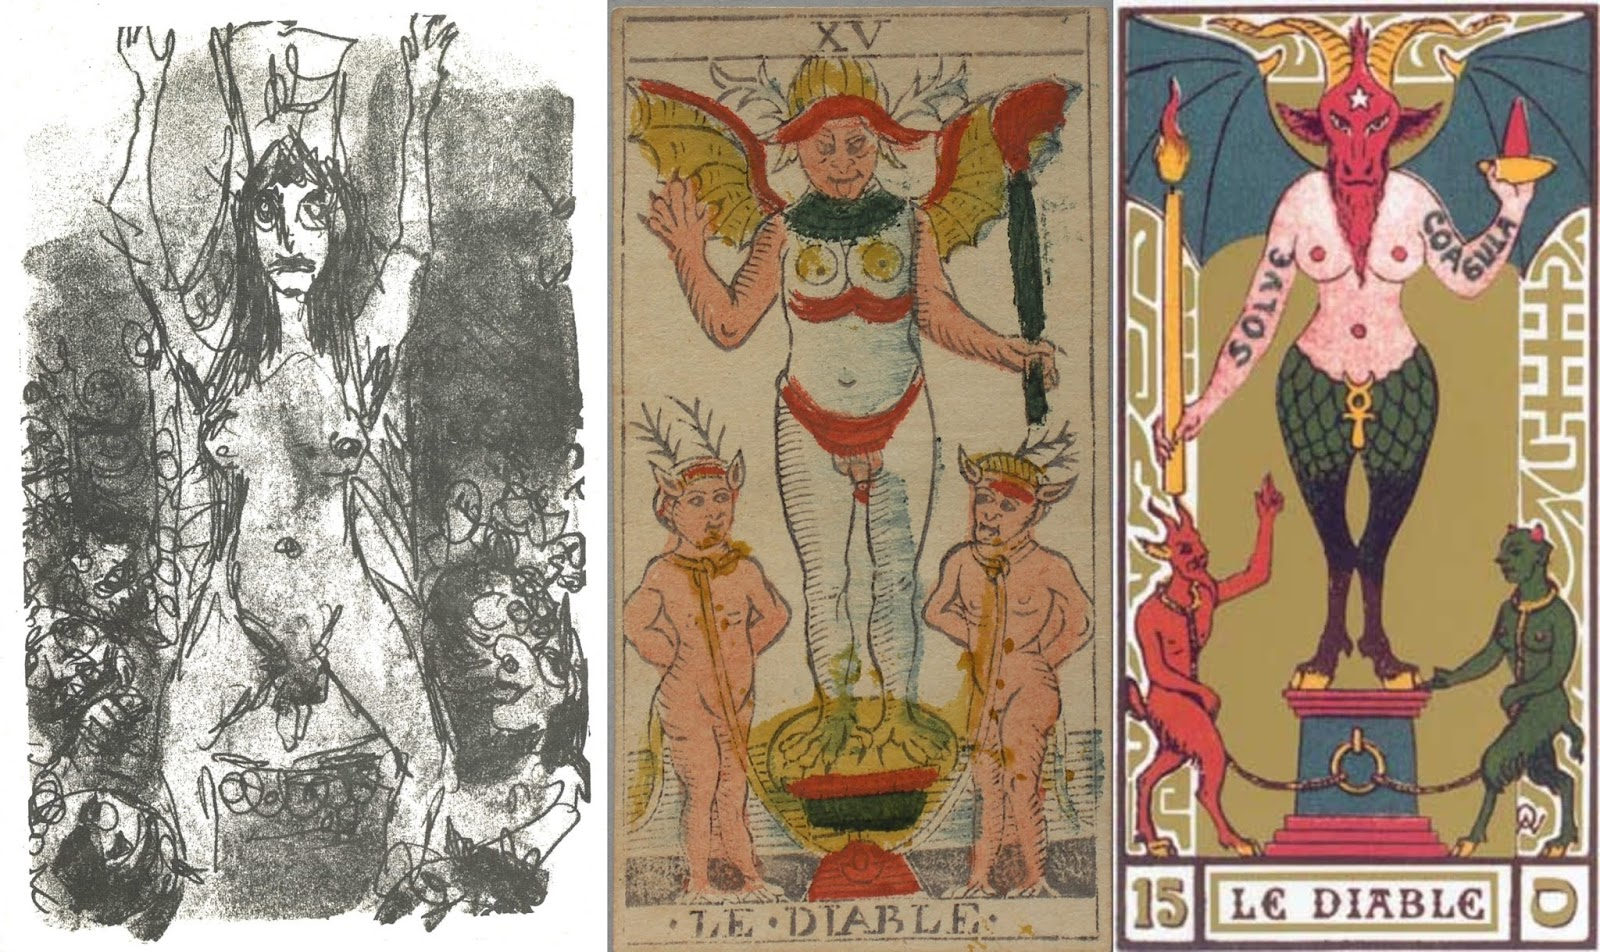 Above left is the illustration of the hermaphrodite done for Meyrink by  Hans Fronius (reproduced in the 1969 German edition, p. 31).